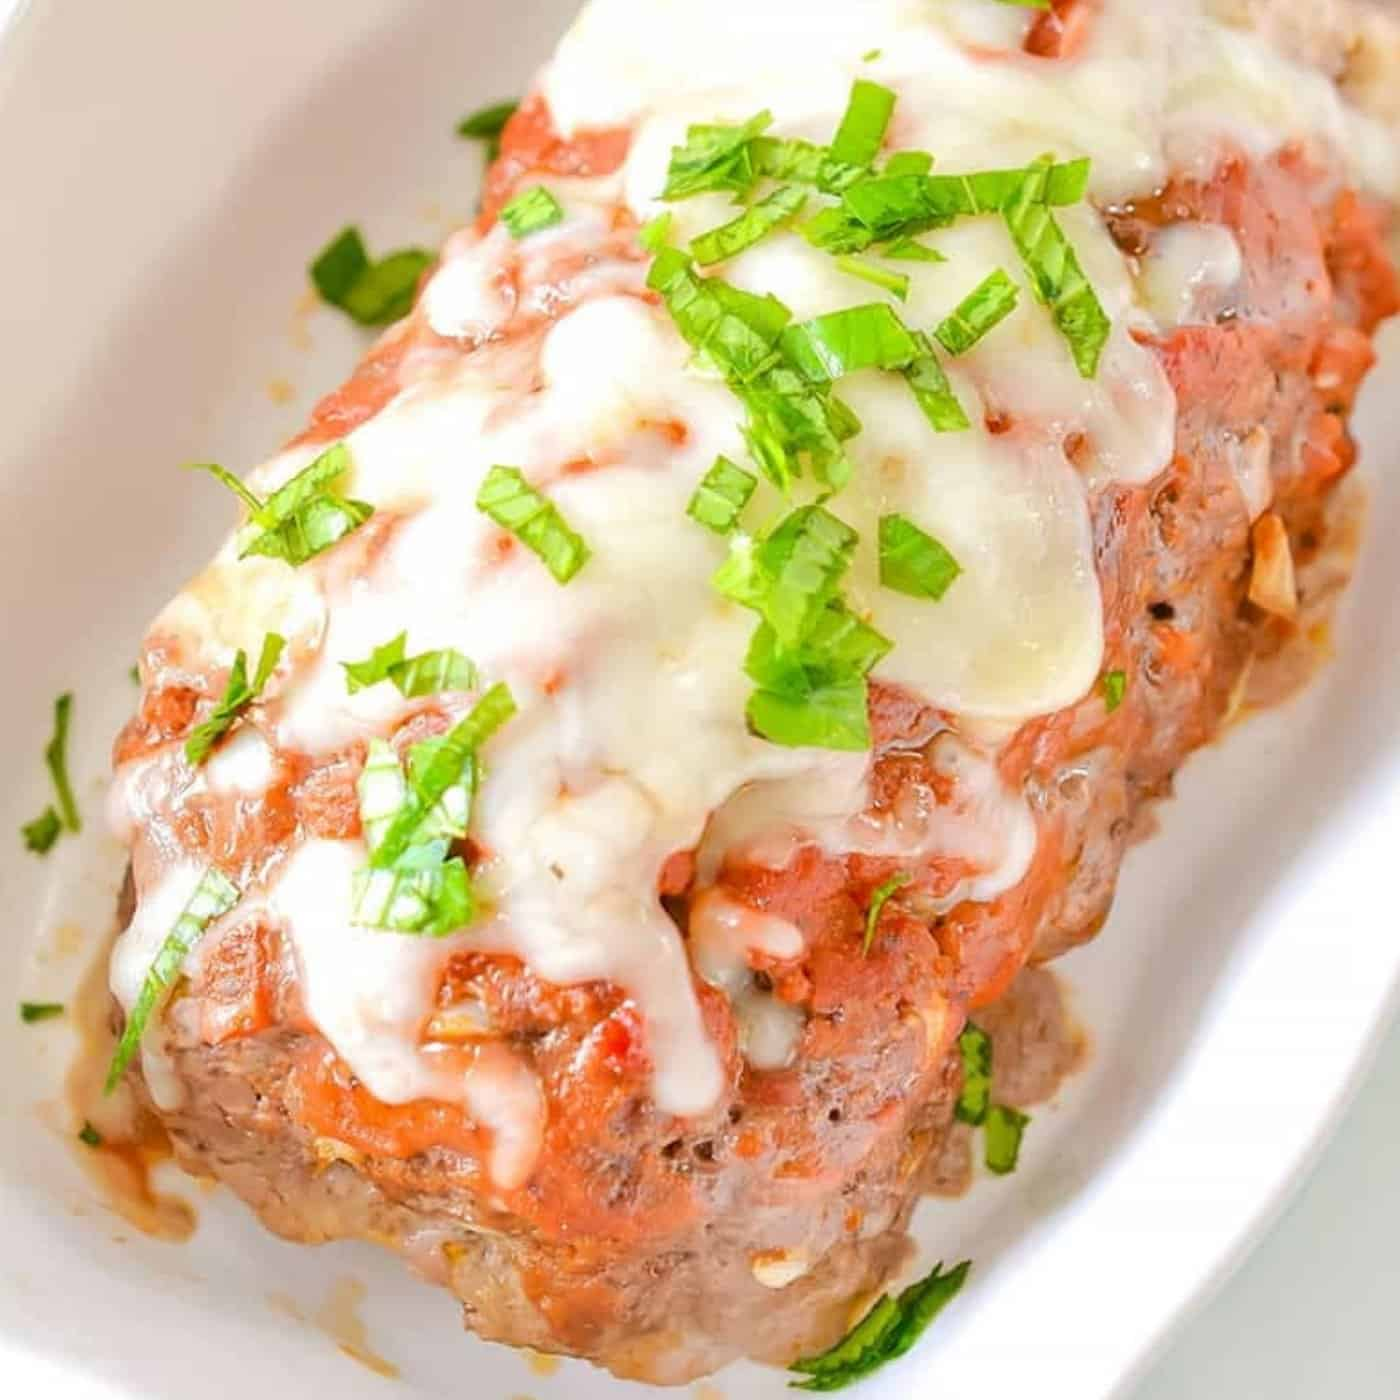 meatloaf is stuffed with delicious cheese